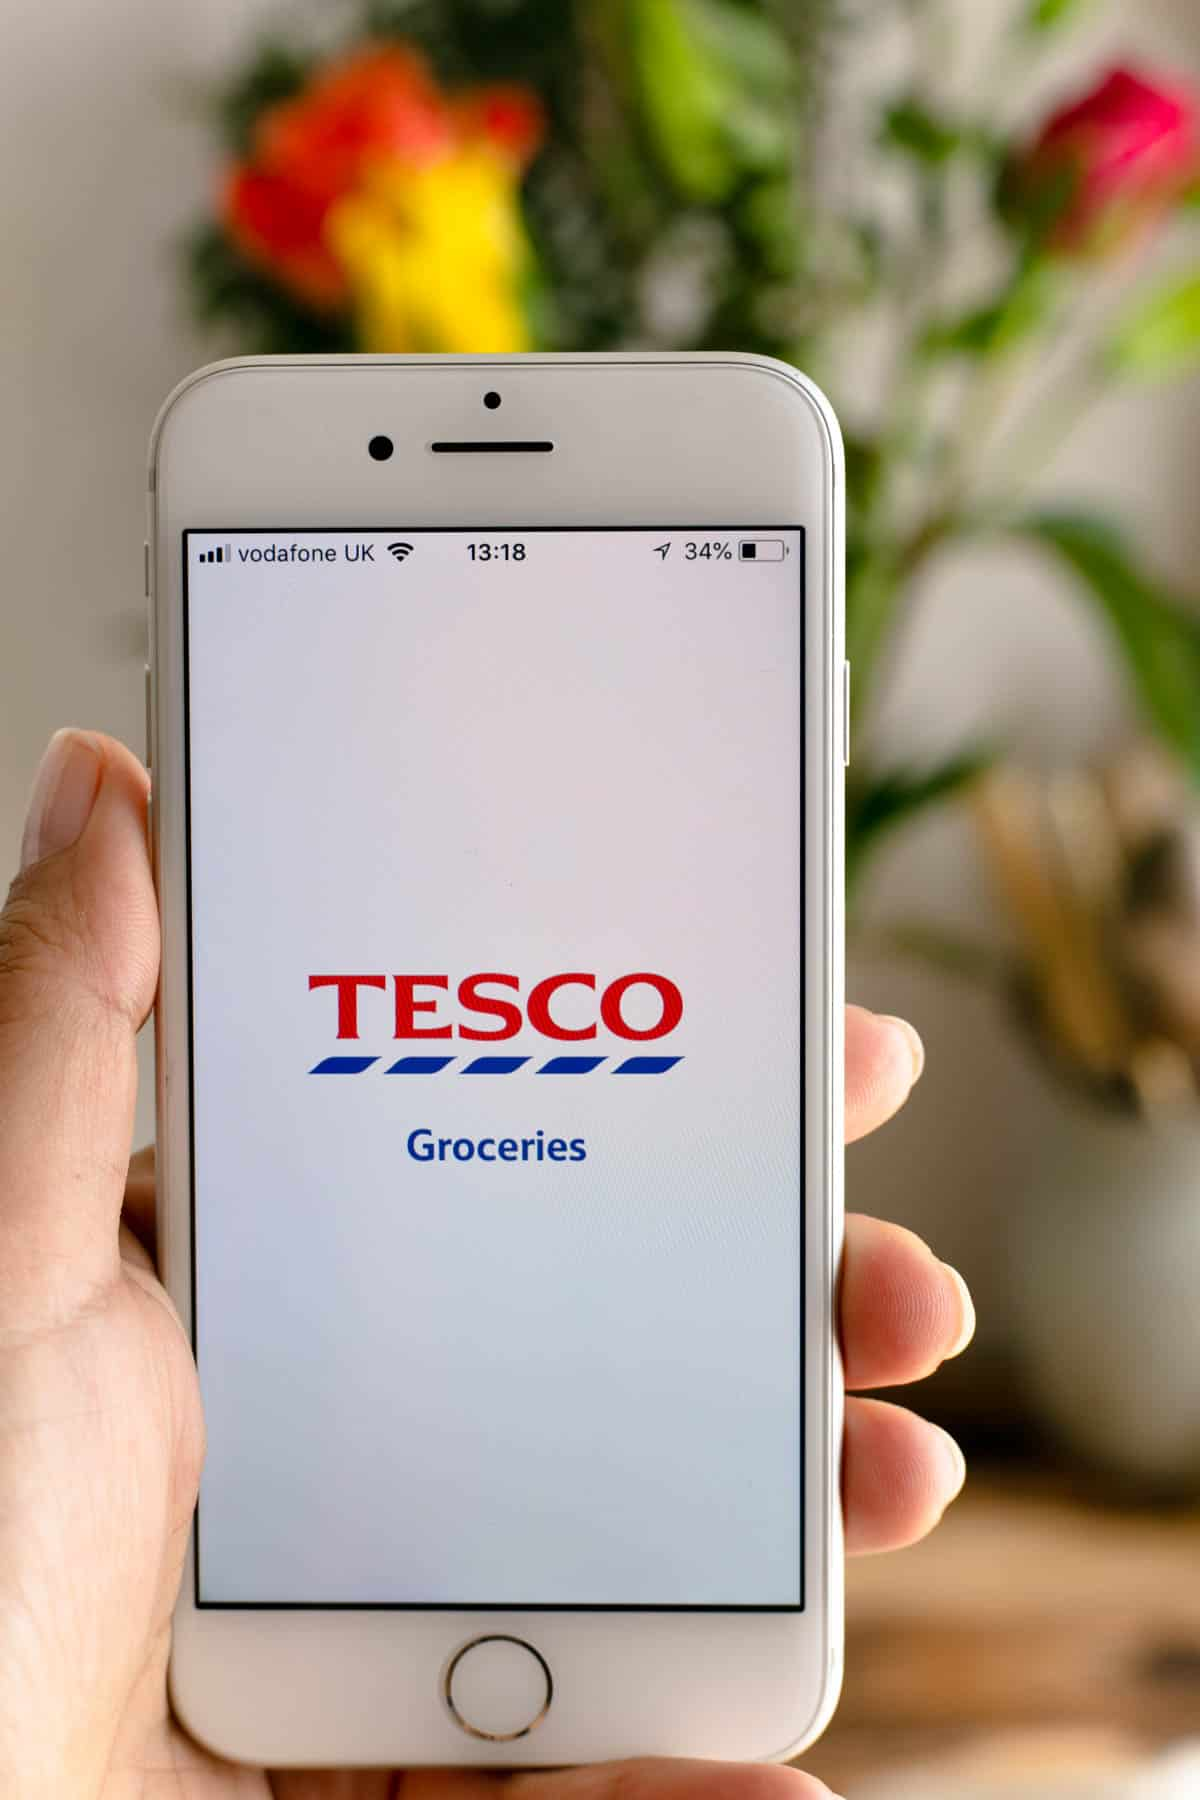 Shopping for groceries have never been easier with Tesco's latest app and its tools!